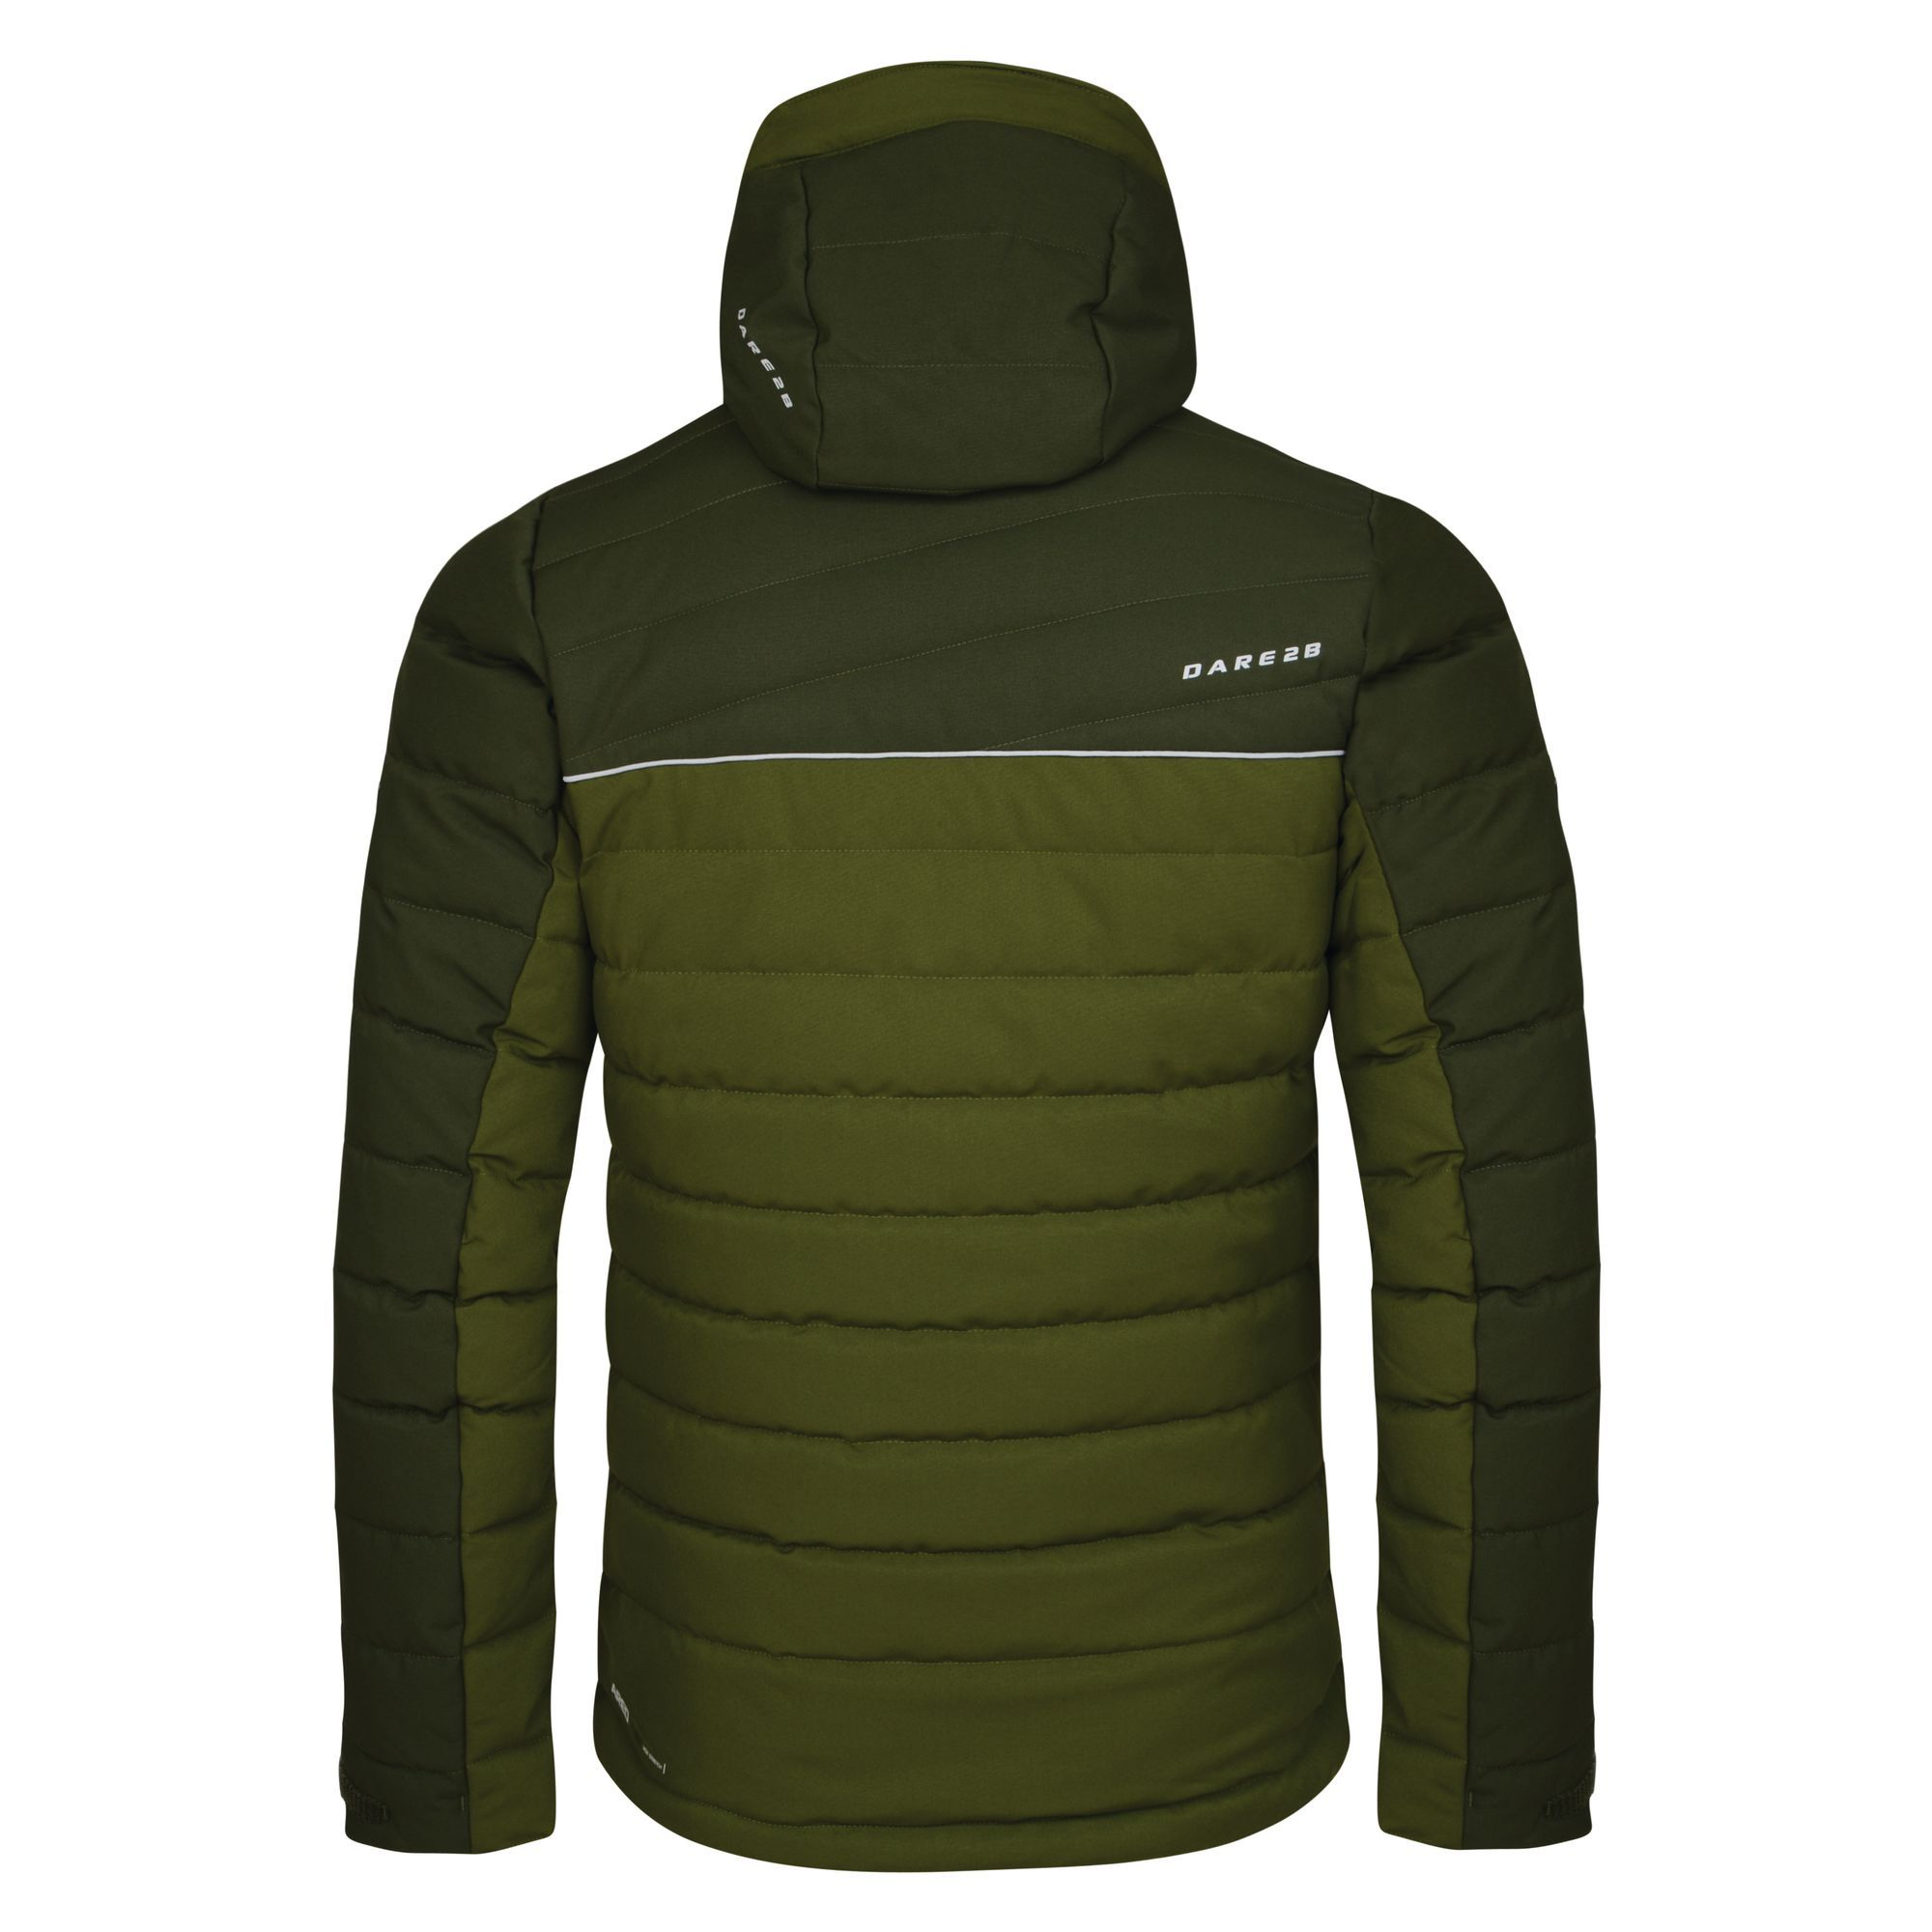 Dare2b-Mens-Waterproof-Breathable-Ski-Jacket-Huge-Clearance-RRP-200 thumbnail 30